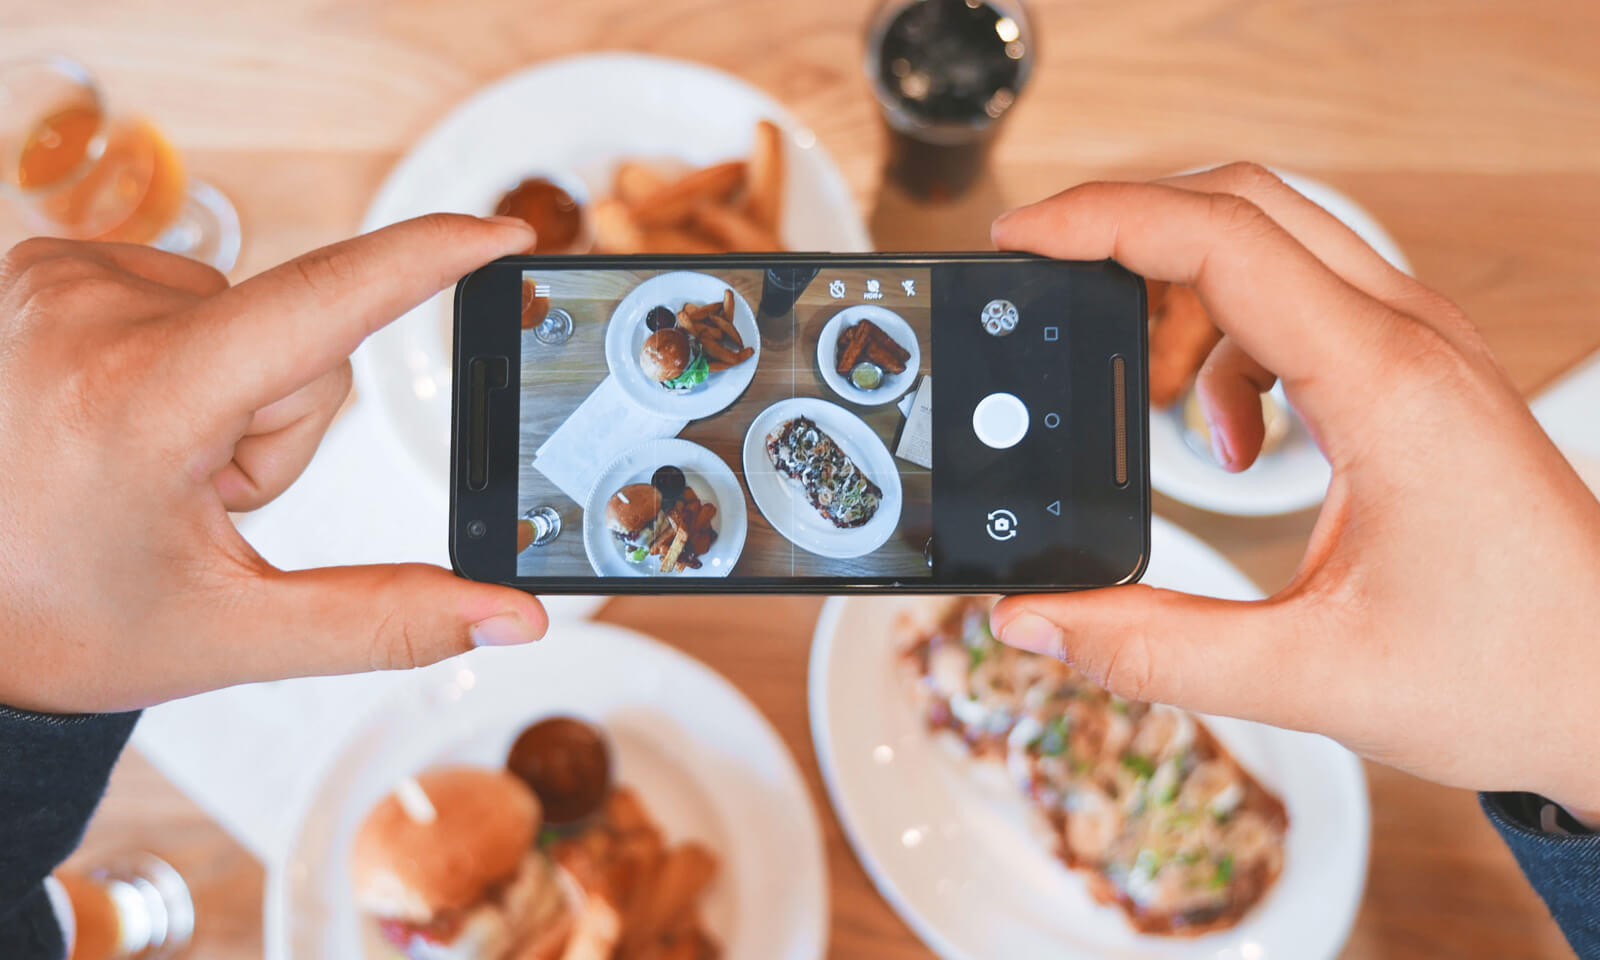 How a Small Business Can Succeed on Snapchat